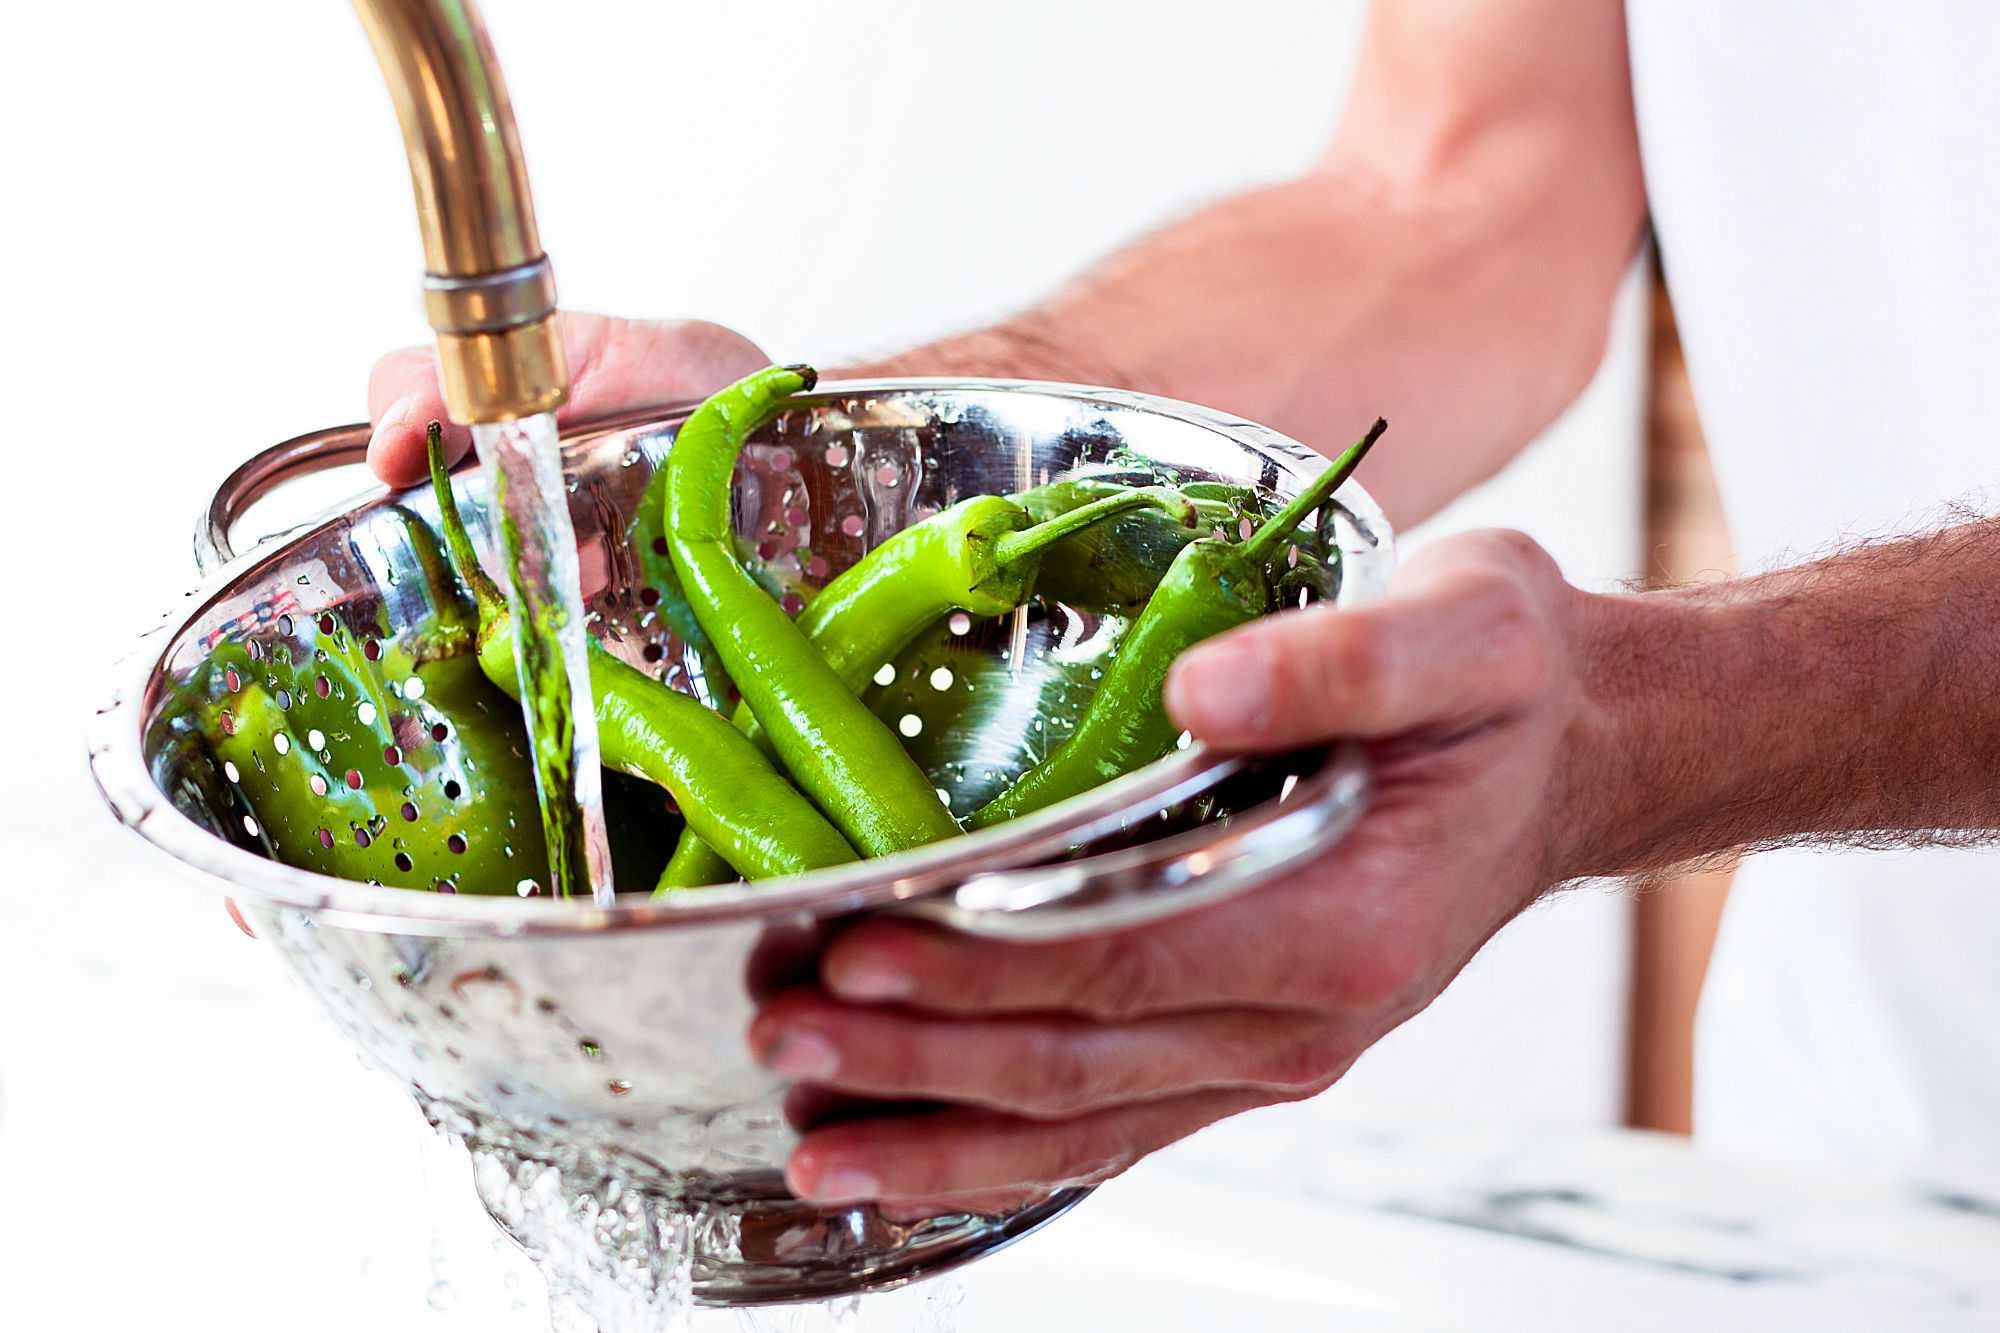 Person washing chiles in colander.